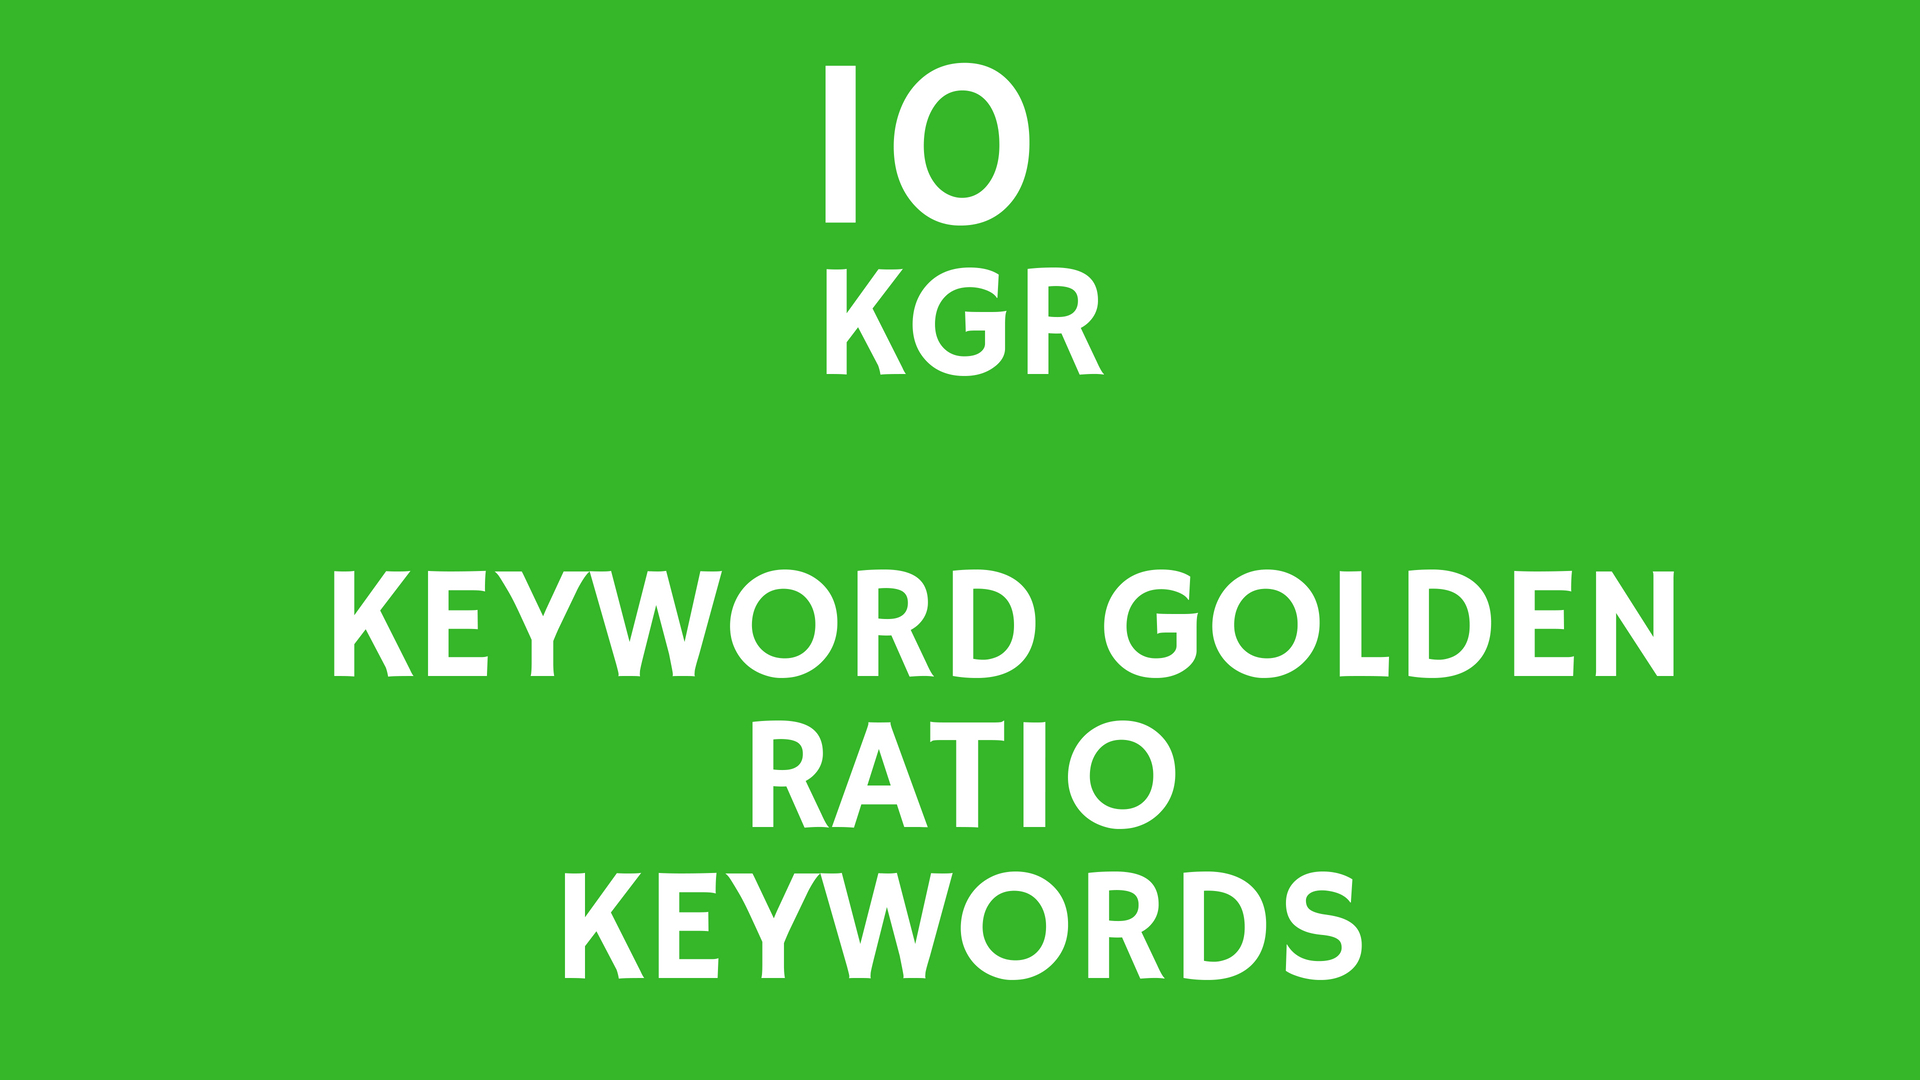 Find 10 Keyword Research Using Kgr Keyword Golden Ratio for your niche